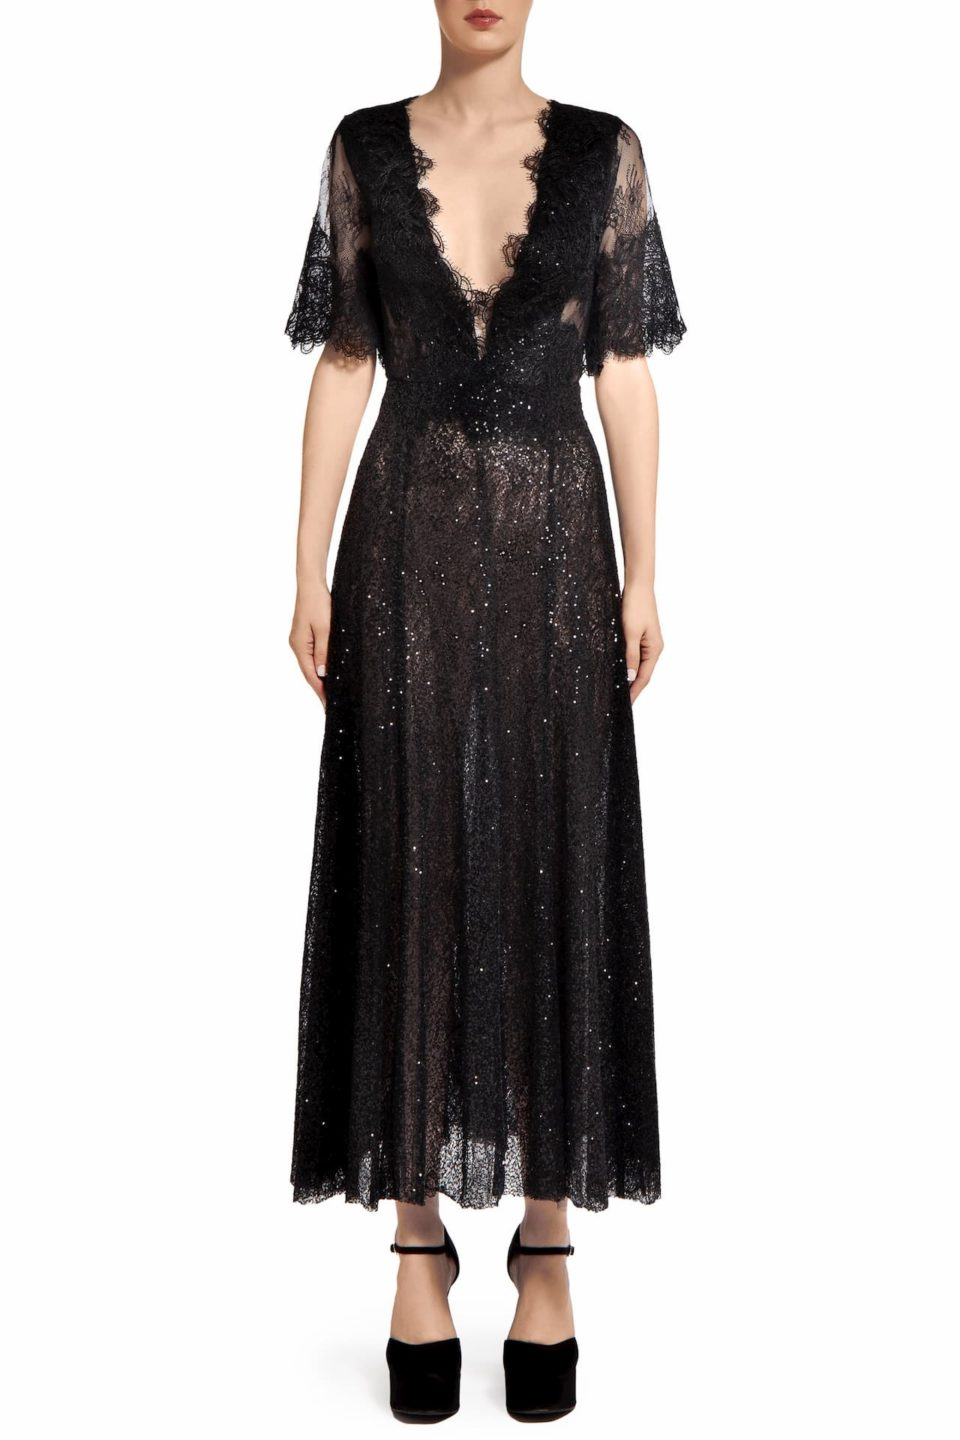 Leigh PR2095 Black Sequin & Chantilly Lace Empire Dress